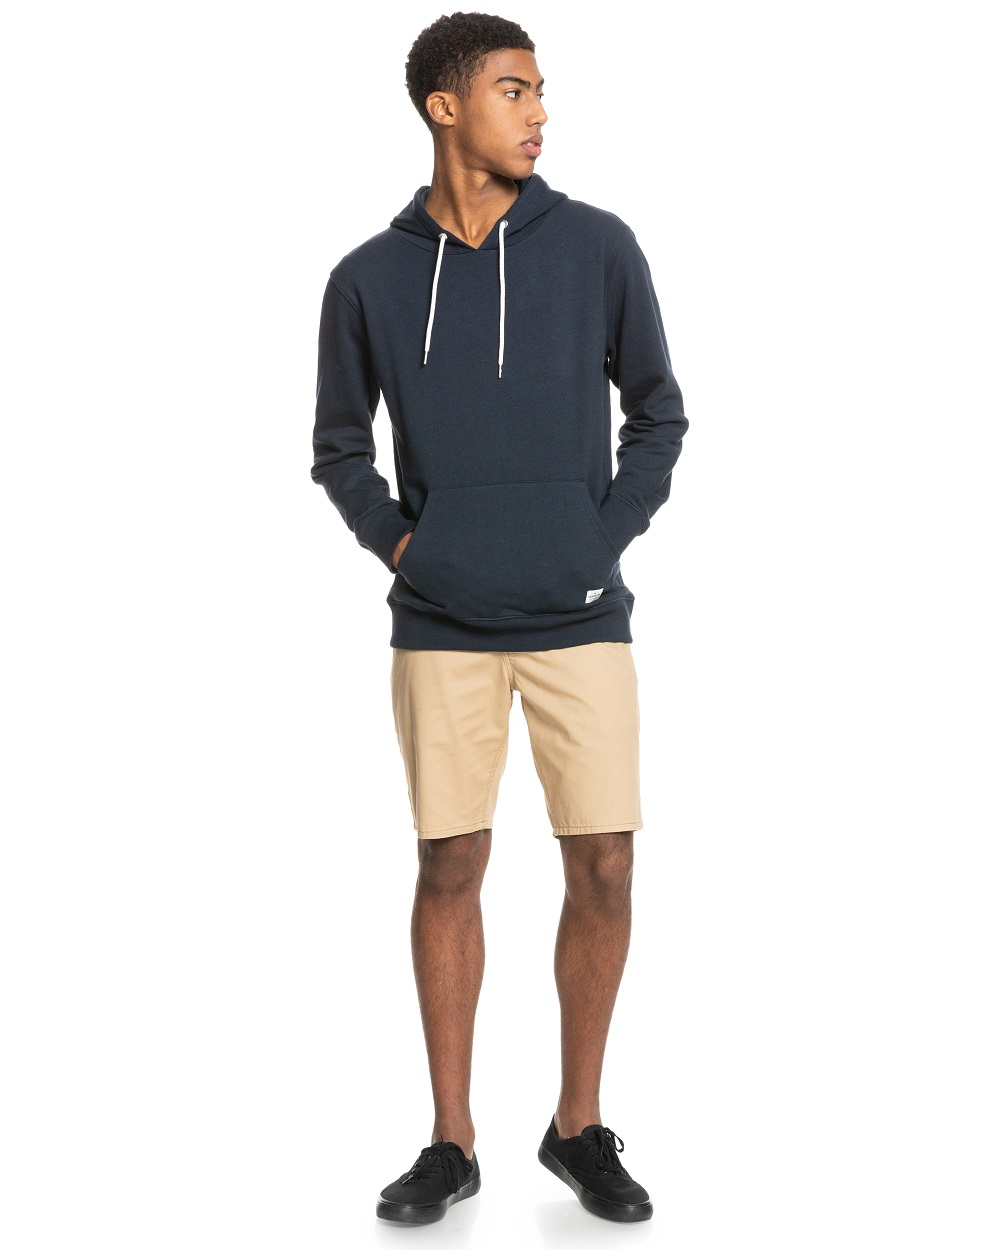 """Quiksilver's latest initiative, """"Made Better,"""" is aimed at finding improved ways to make men's and women's apparel."""